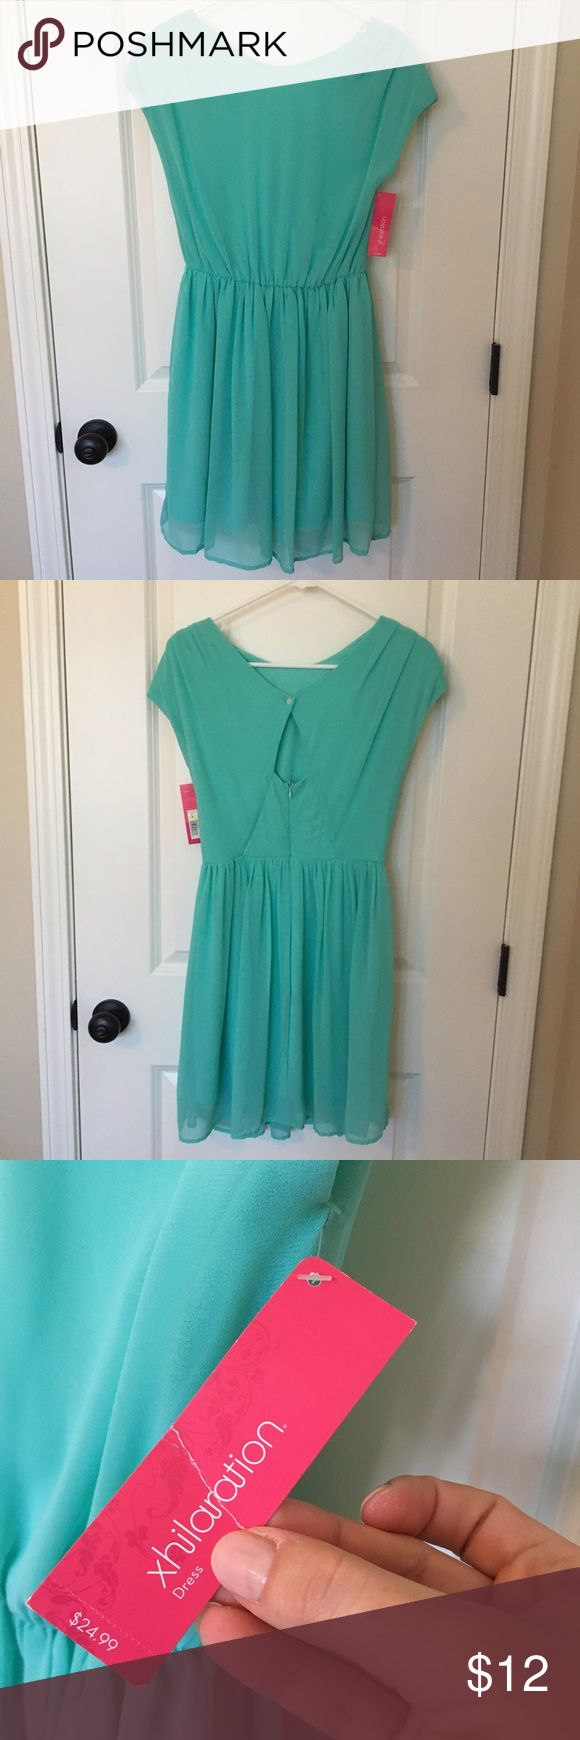 Mint green high neck dress. NWT Short mint green dress made of a silky sheer material but fully lined. Has a small keyhole on the back with a button. Never worn. Xhilaration Dresses